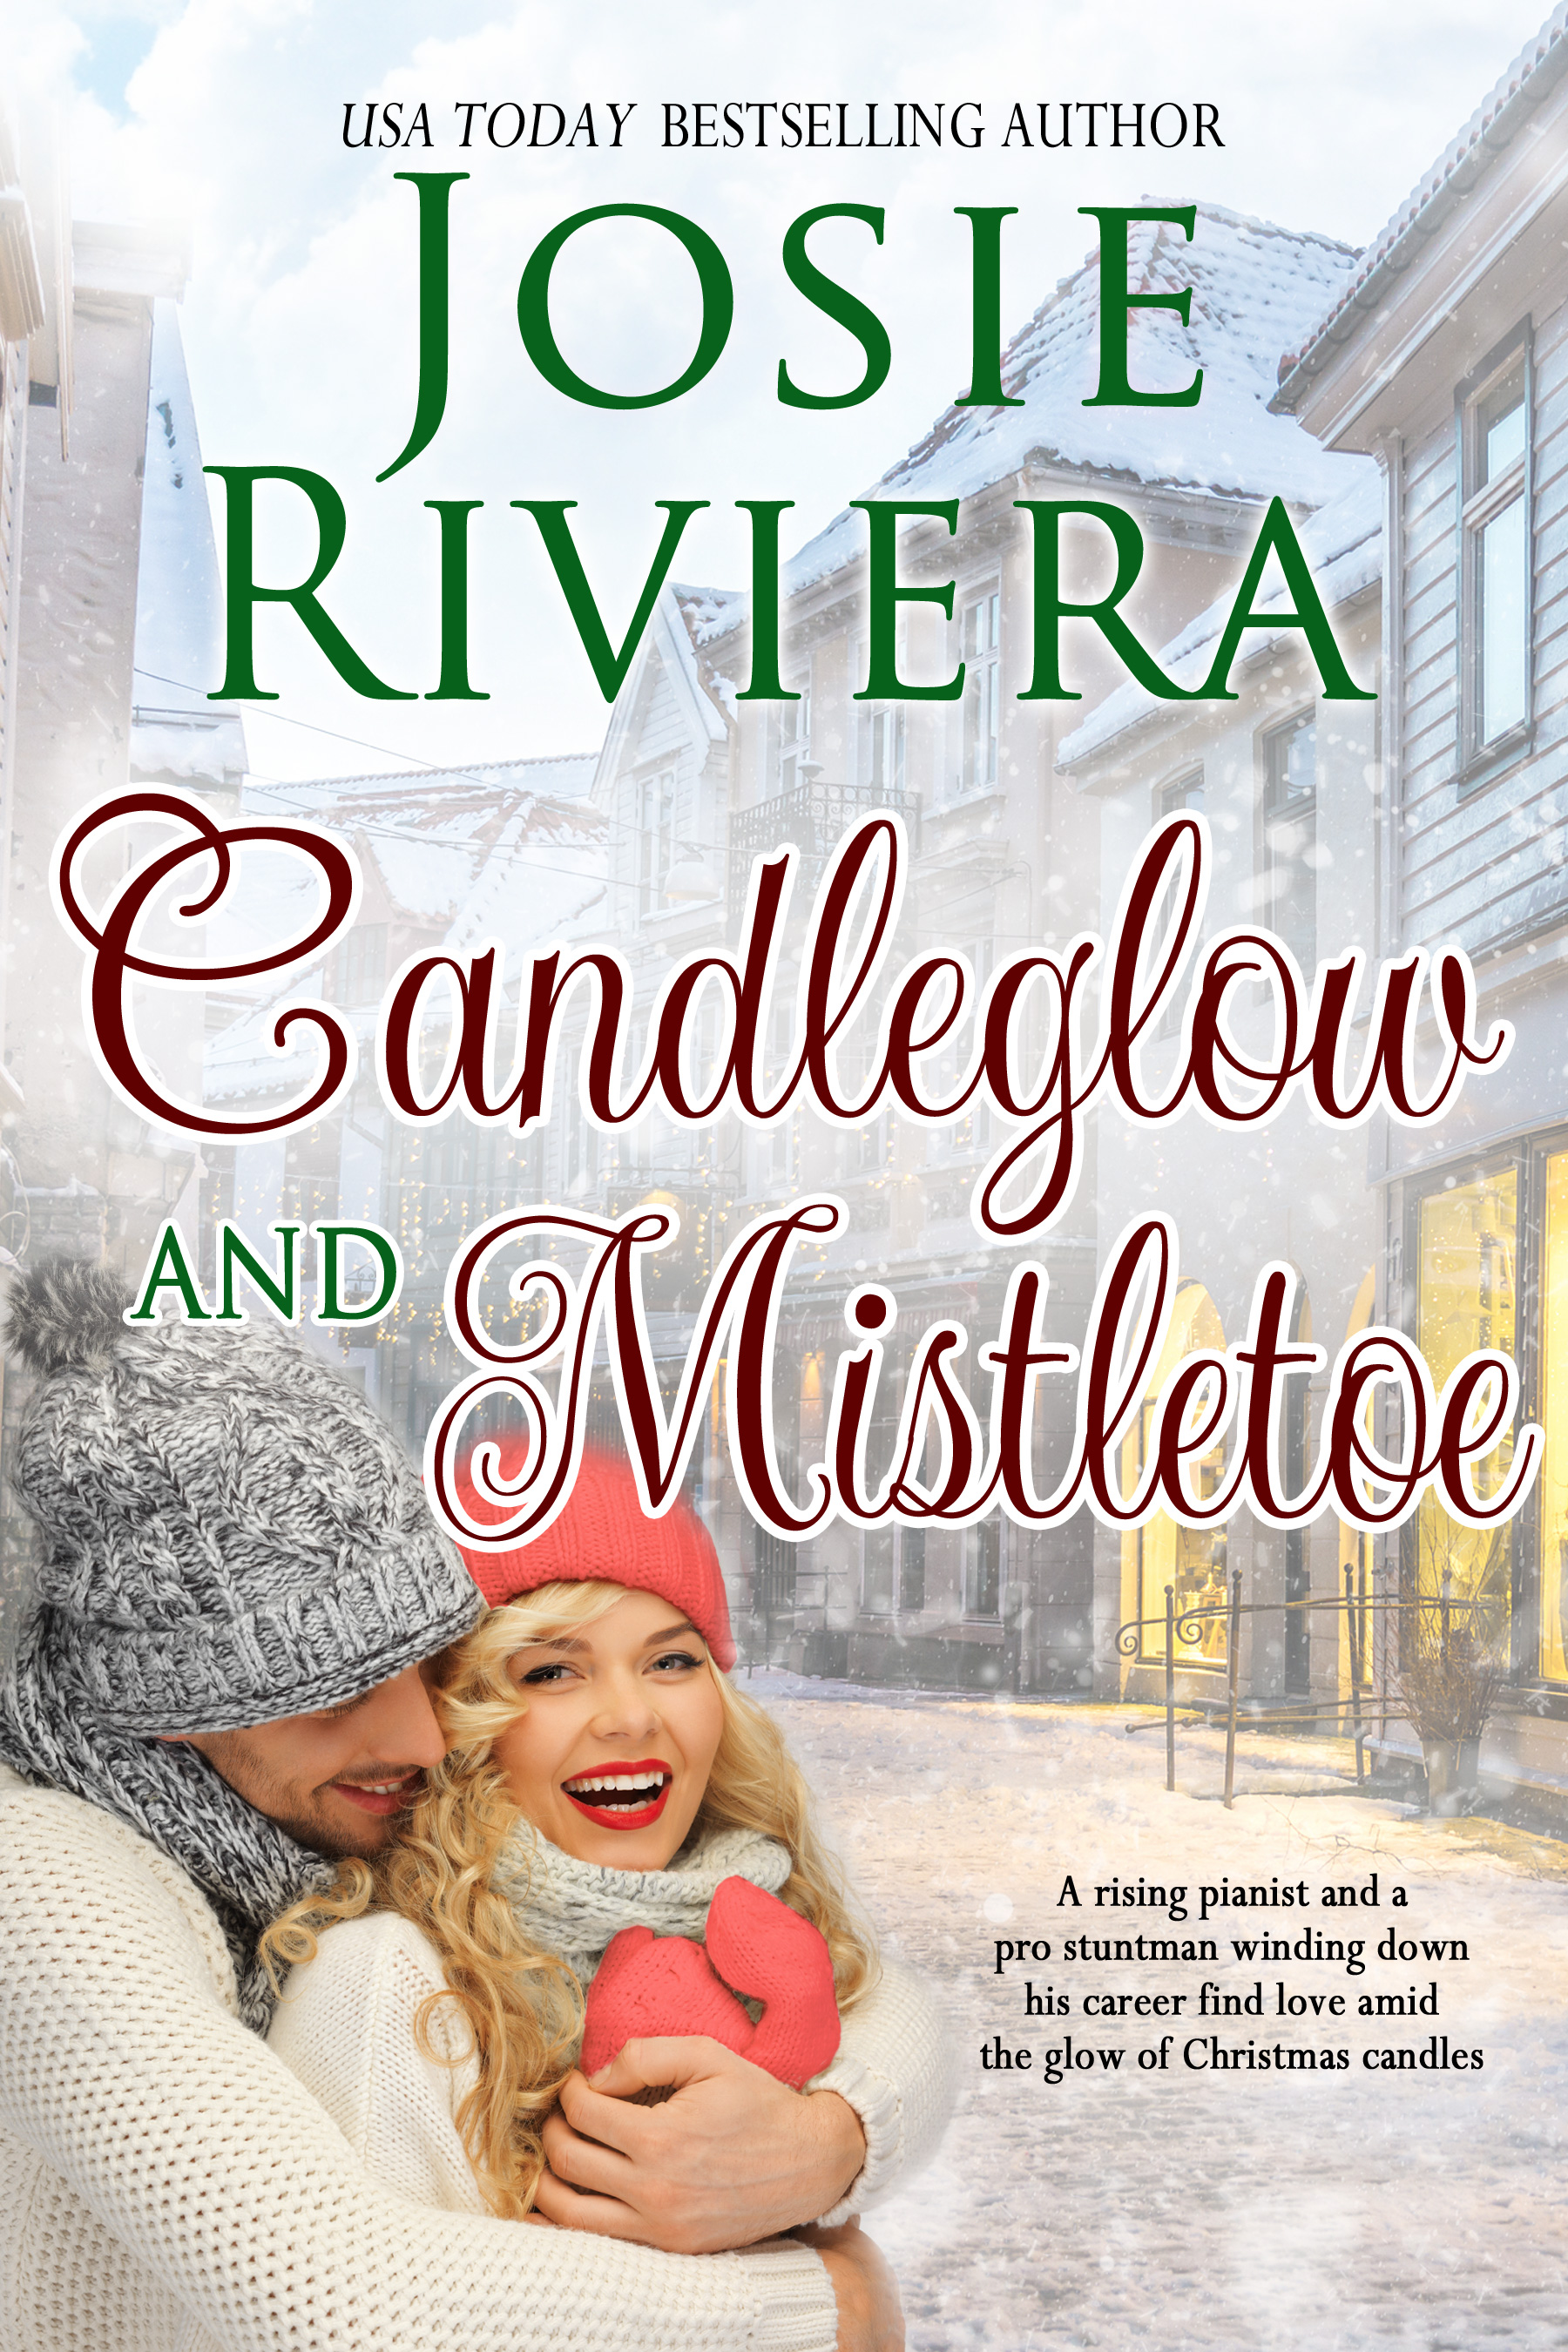 Candleglow and Mistletoe